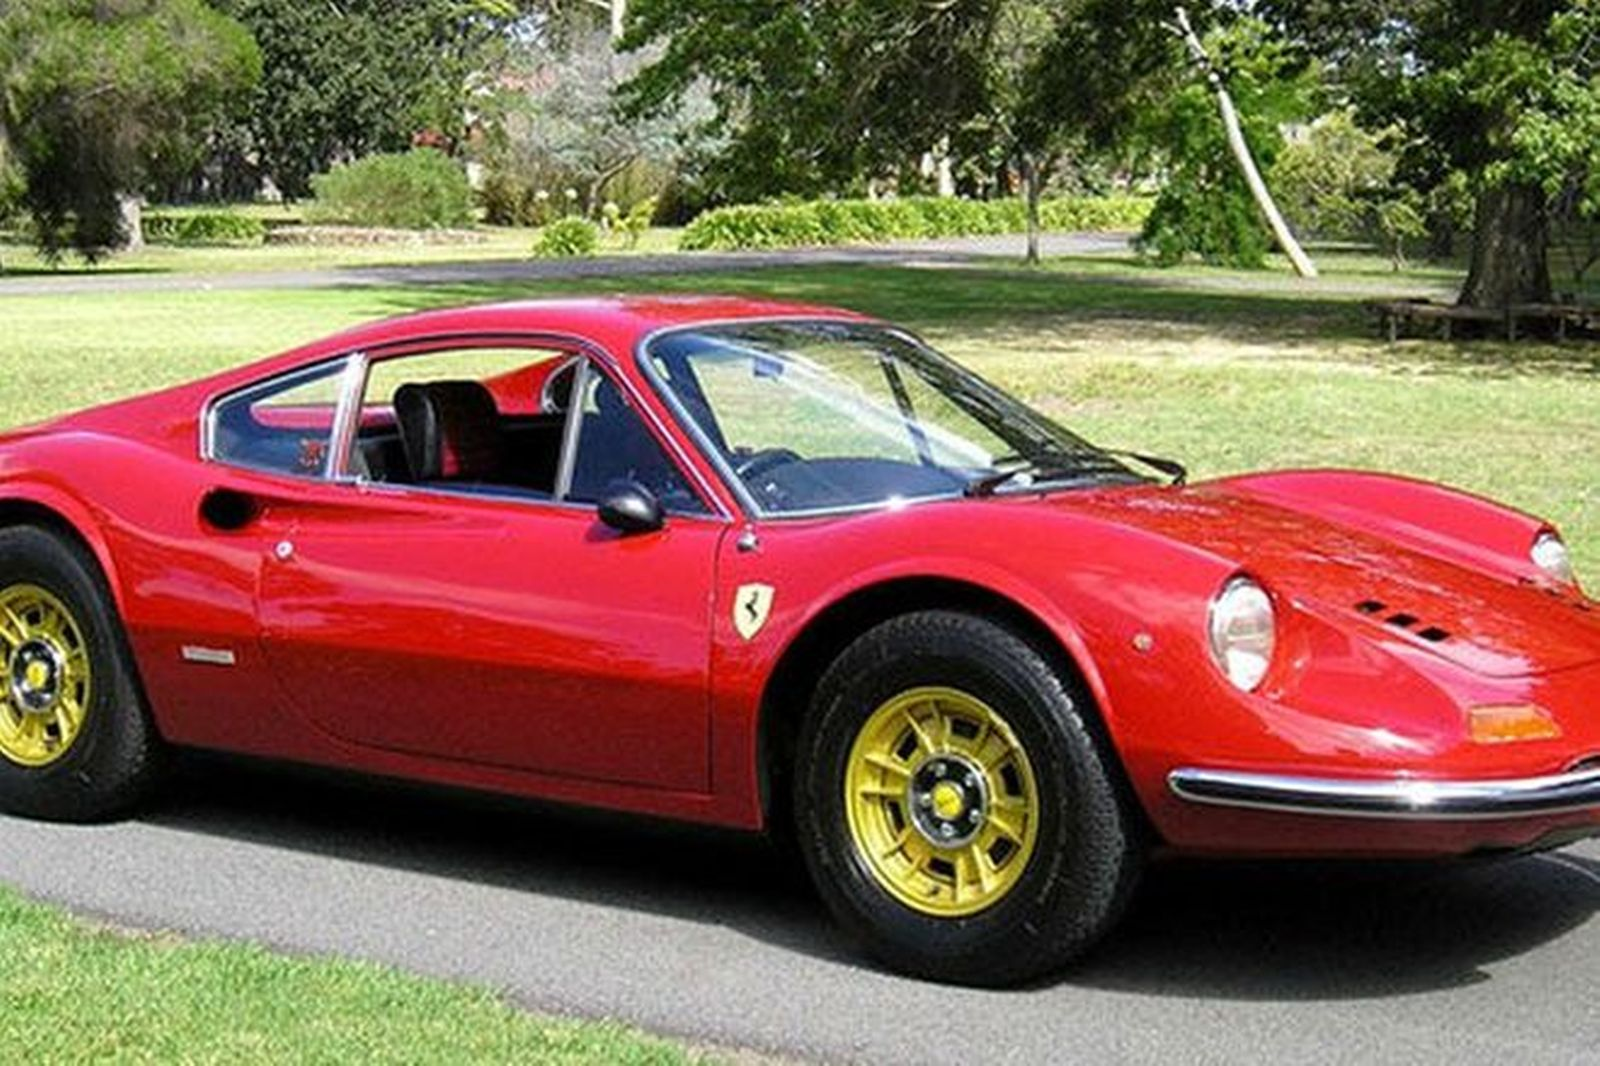 Sold Ferrari Dino 246 Gt Coupe Auctions Lot 46 Shannons